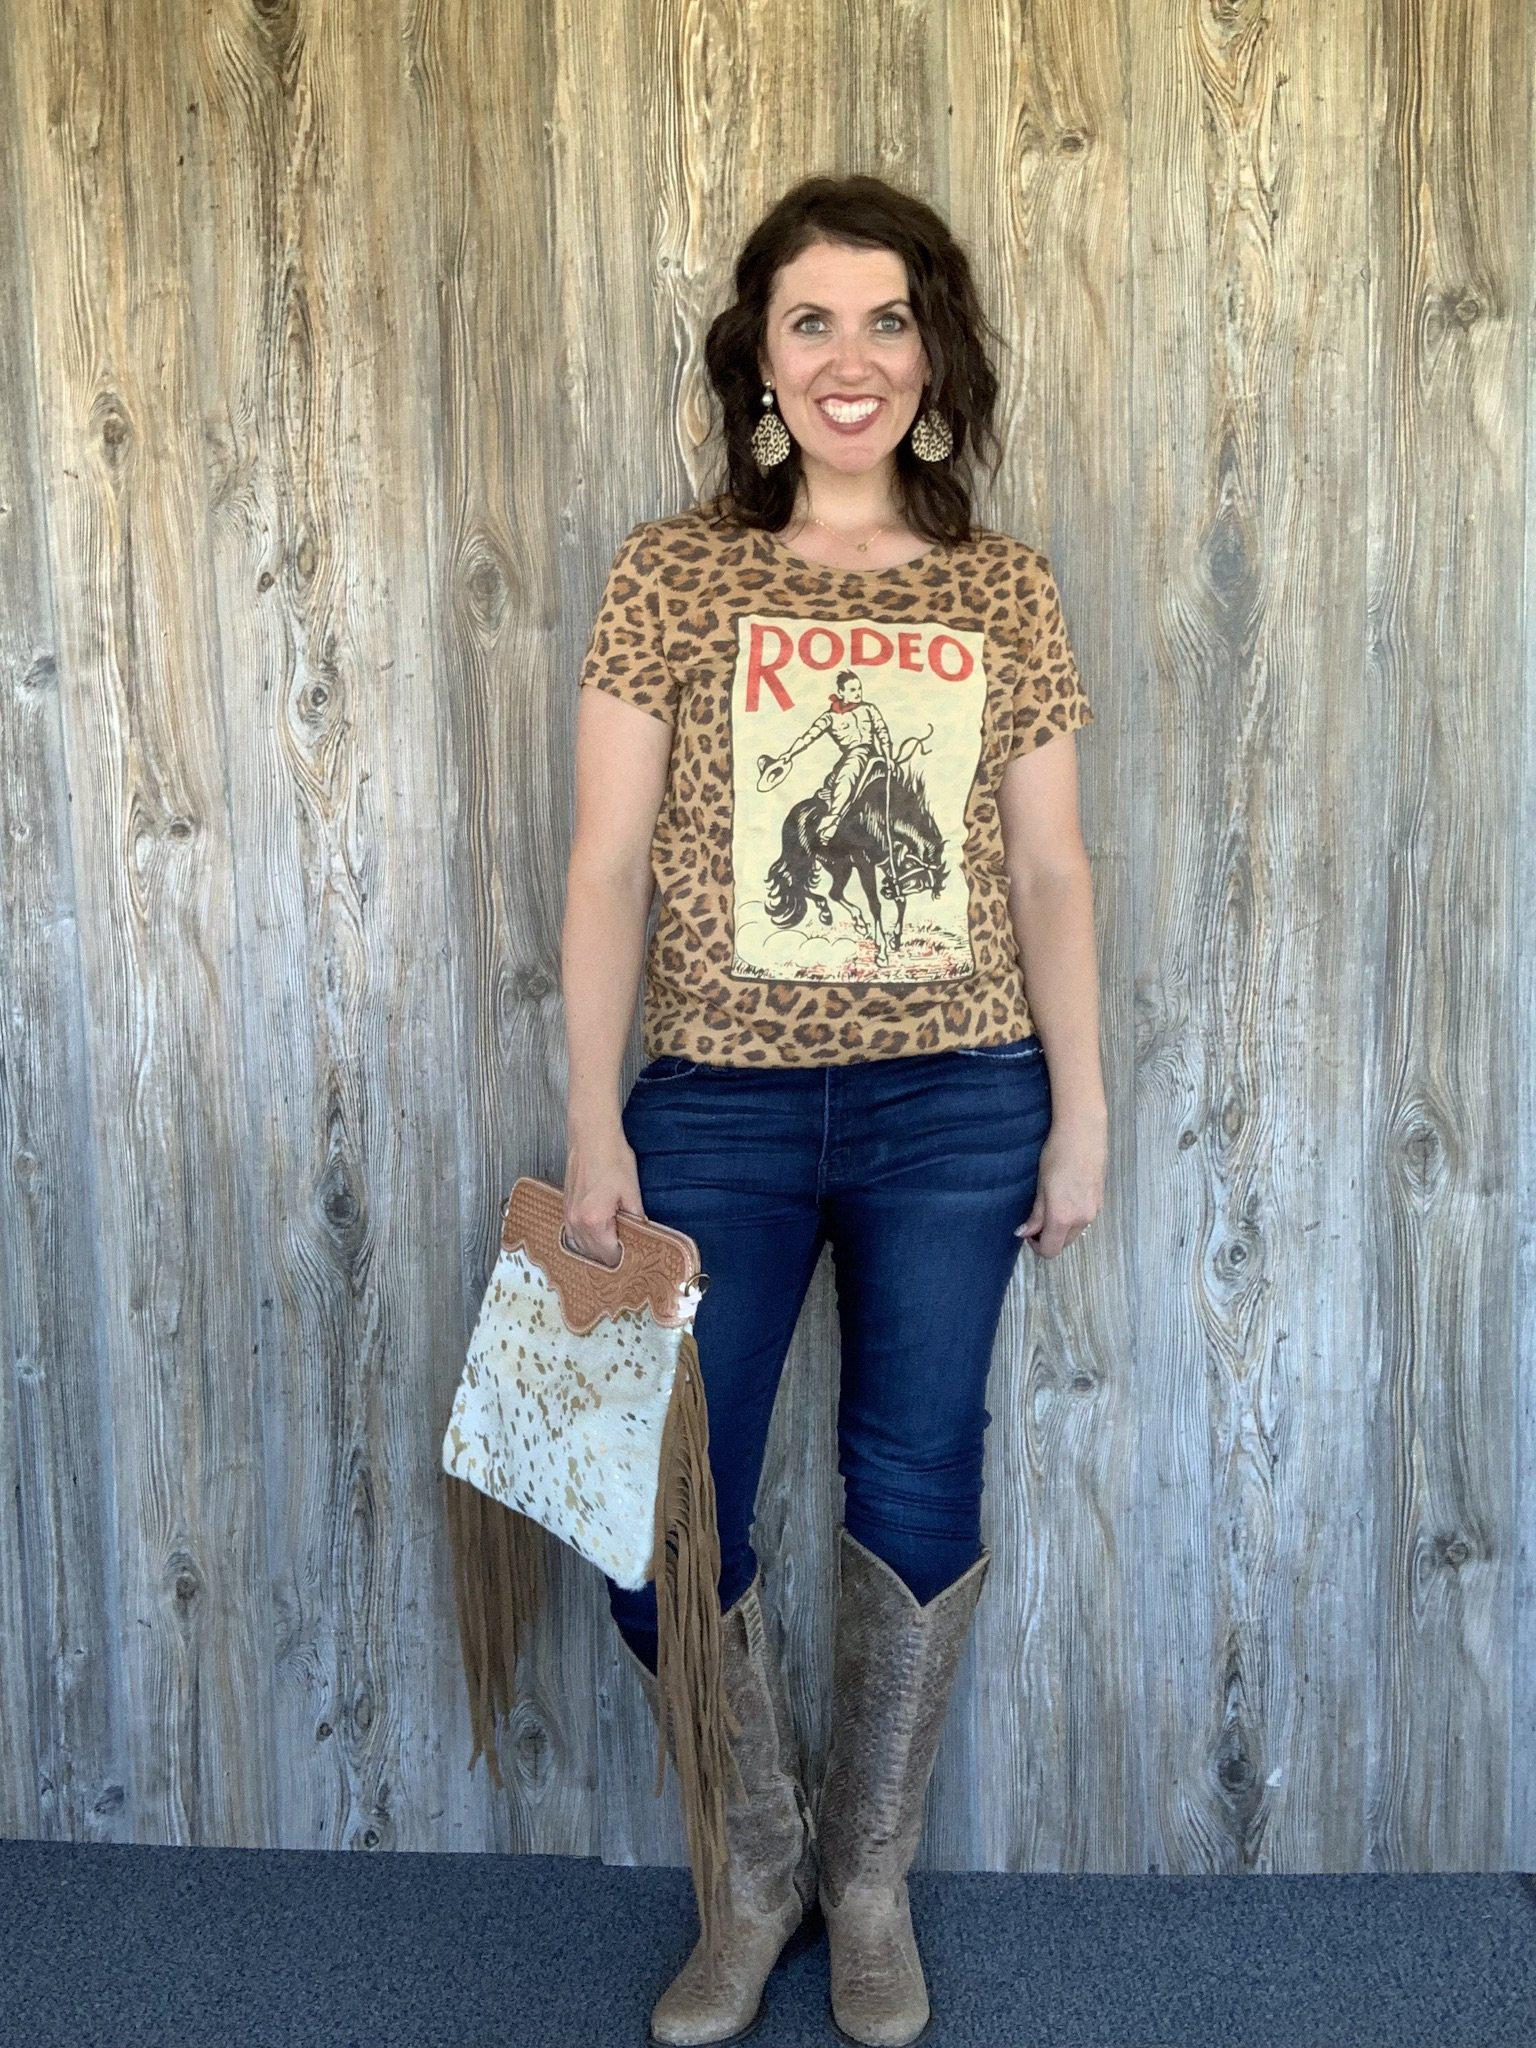 Leopard Rodeo Tee